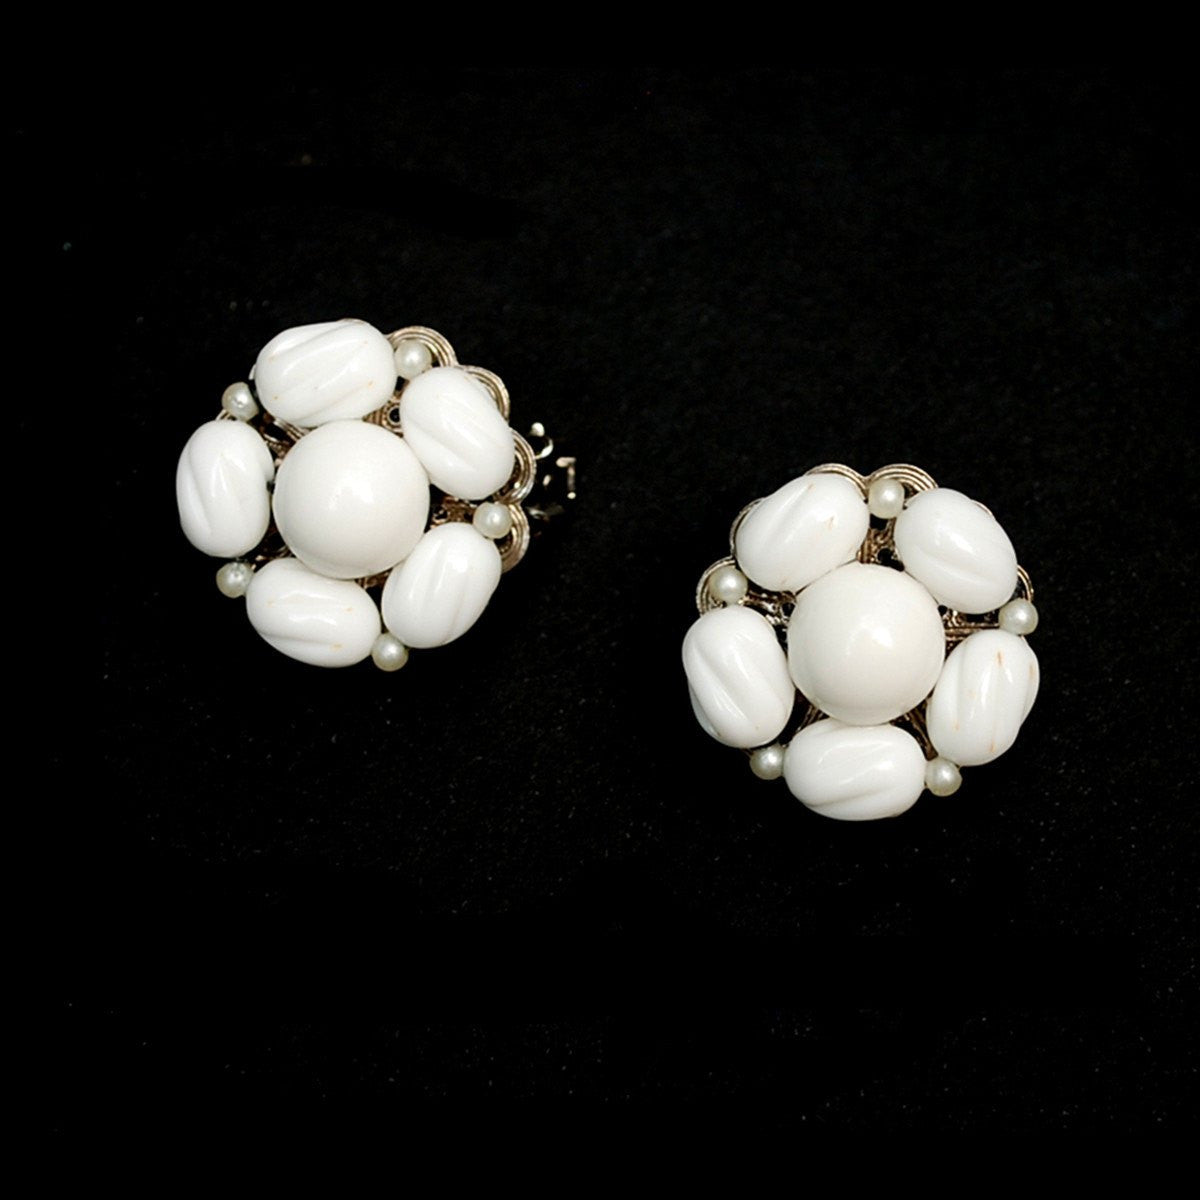 1950s Milk Glass Cluster Bead Earrings by Hobe 3